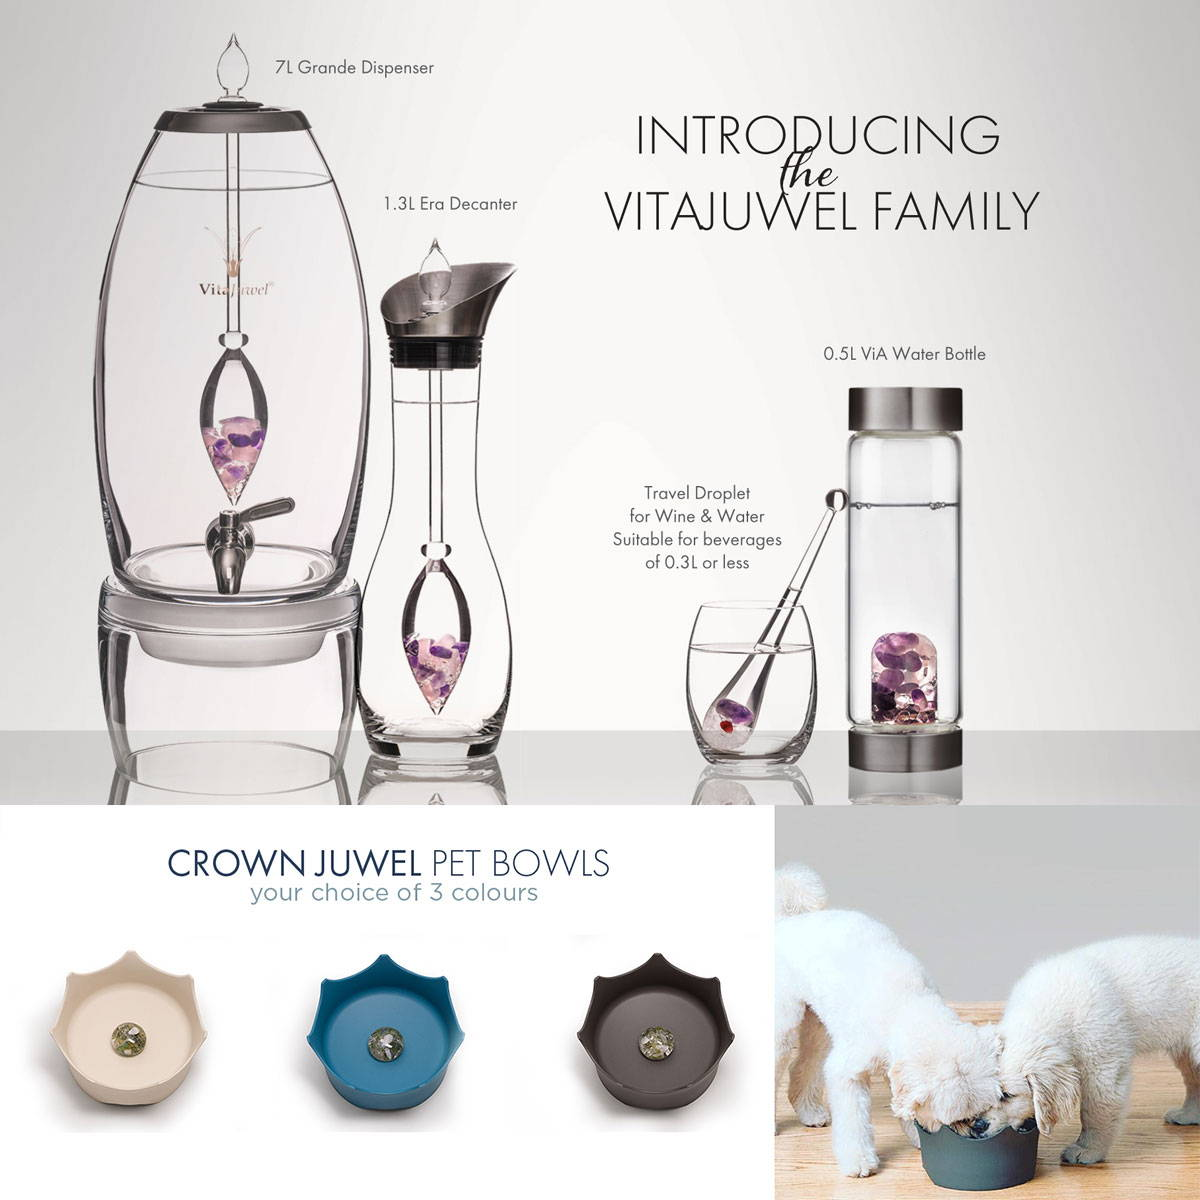 VitaJuwel Essential Gift Guide